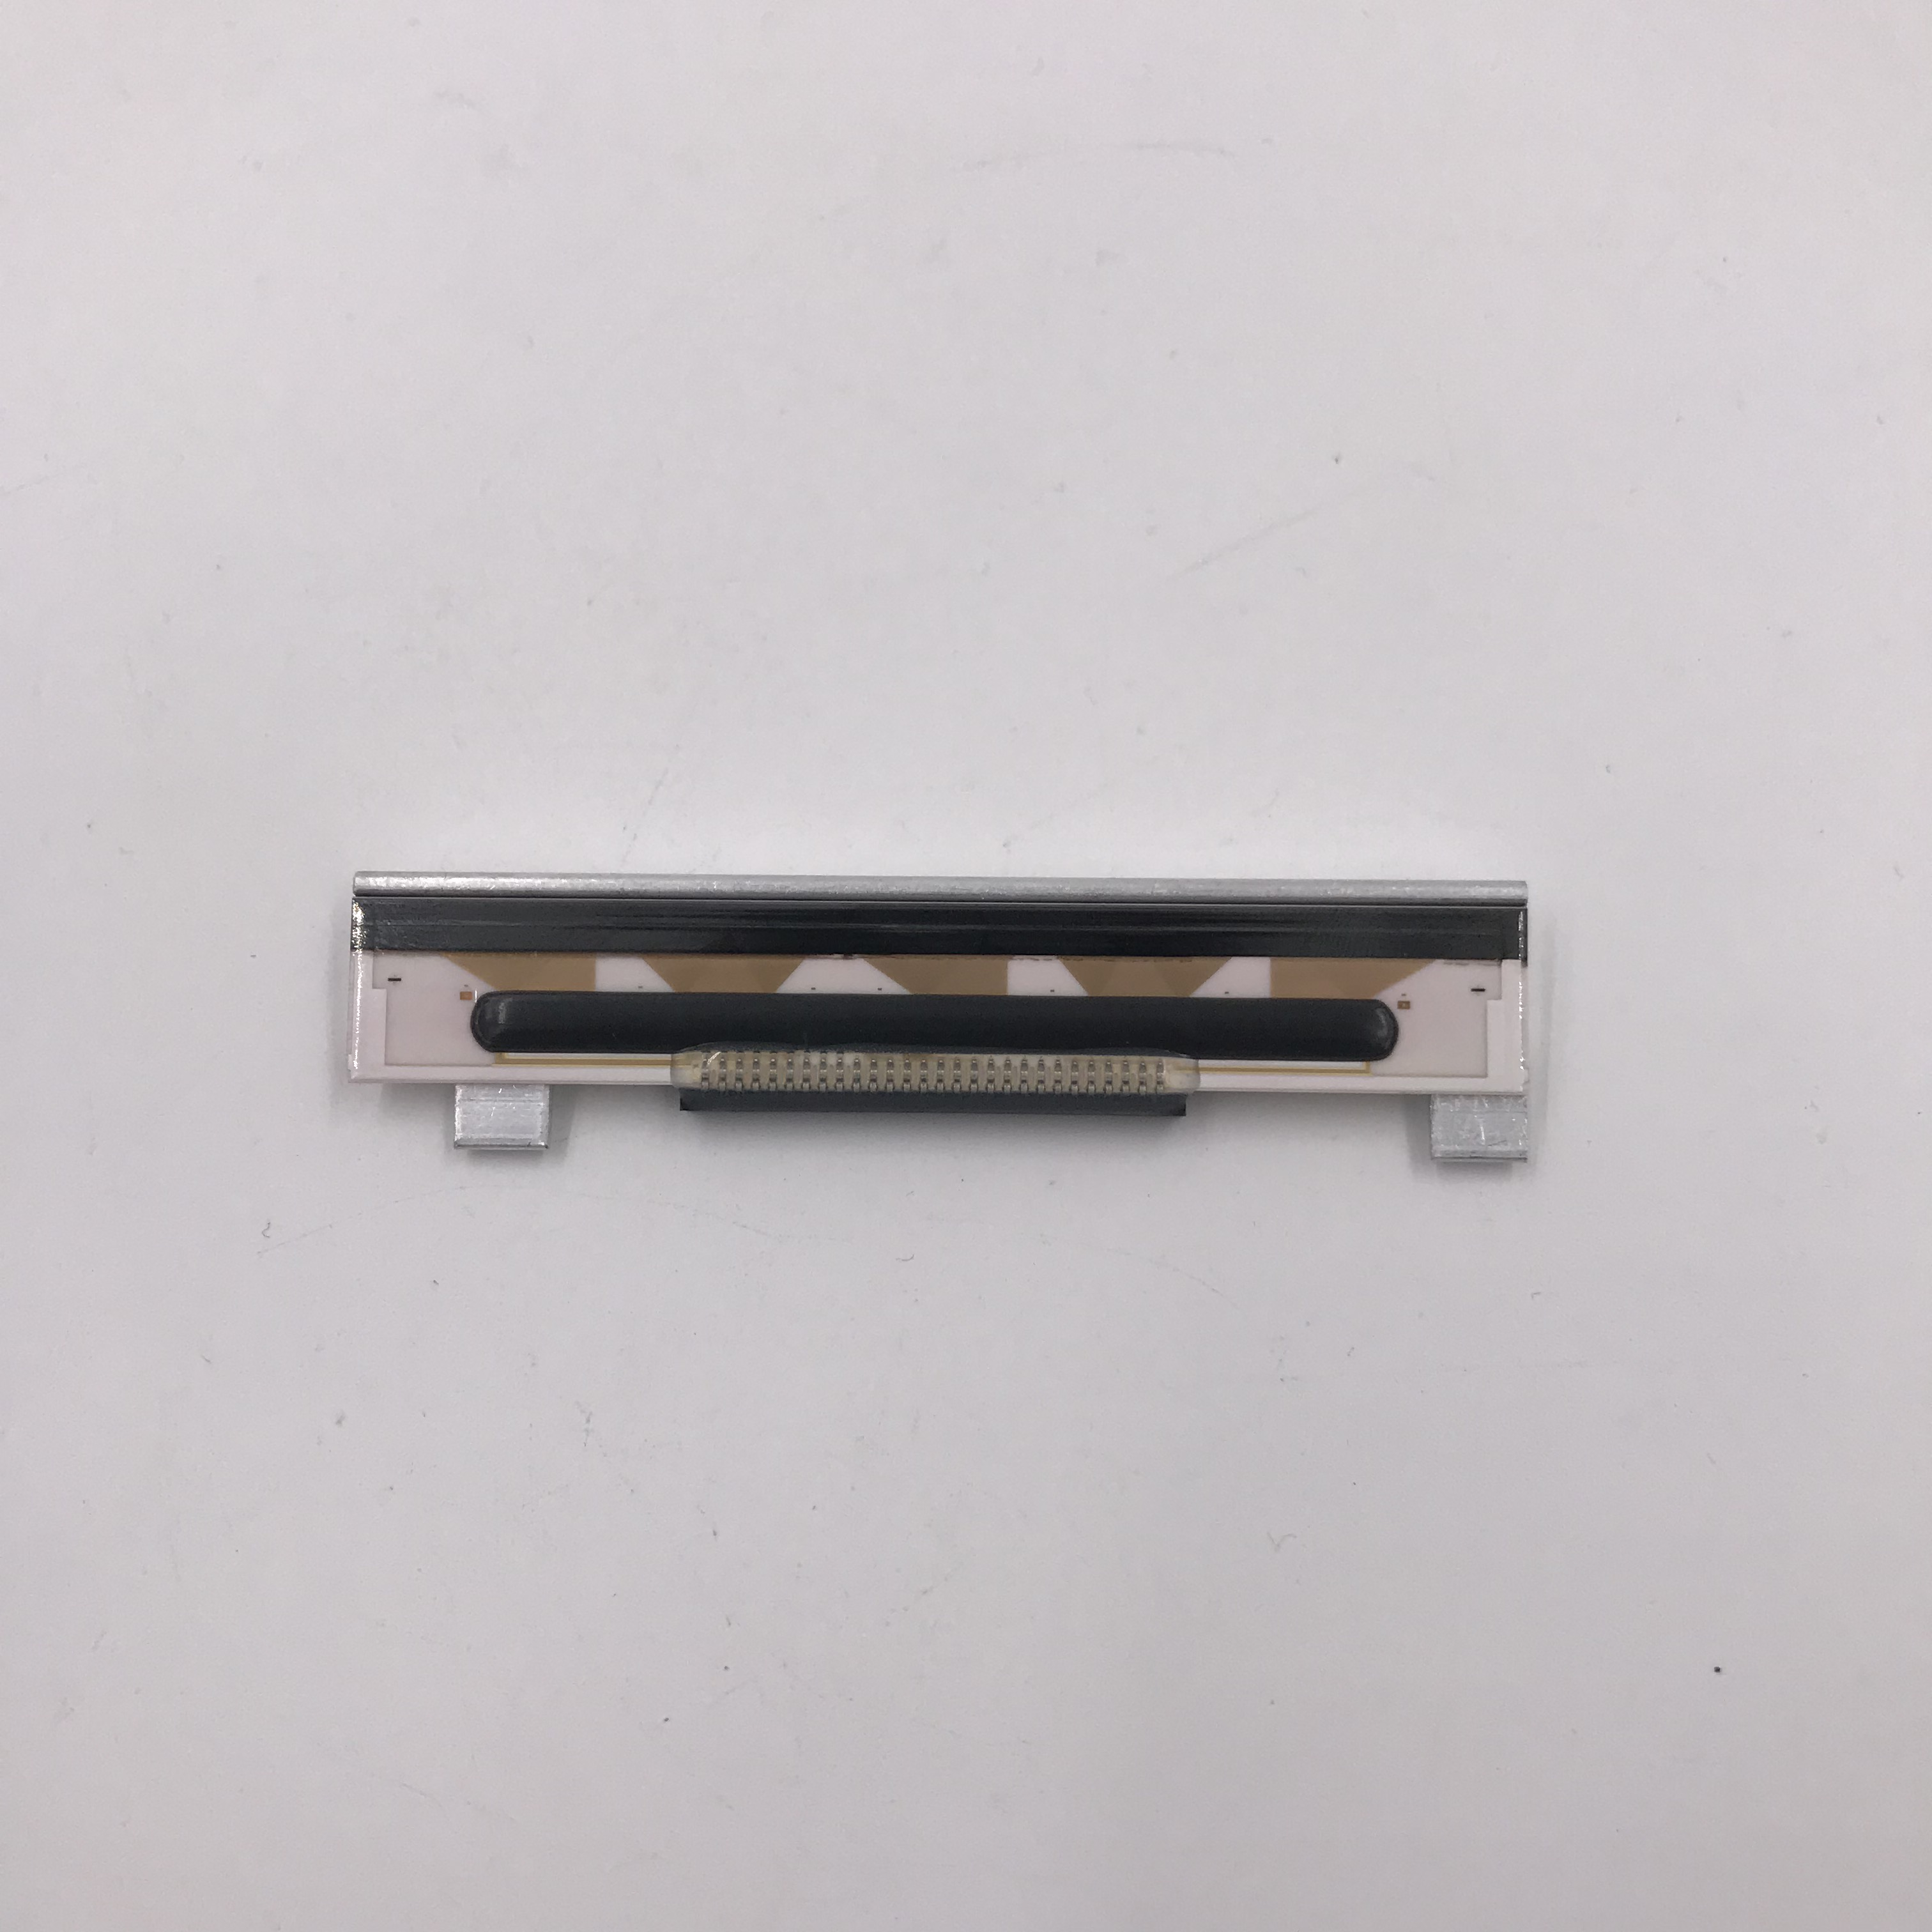 New original thermal printhead fit for IBM 4610 2NR POS printer